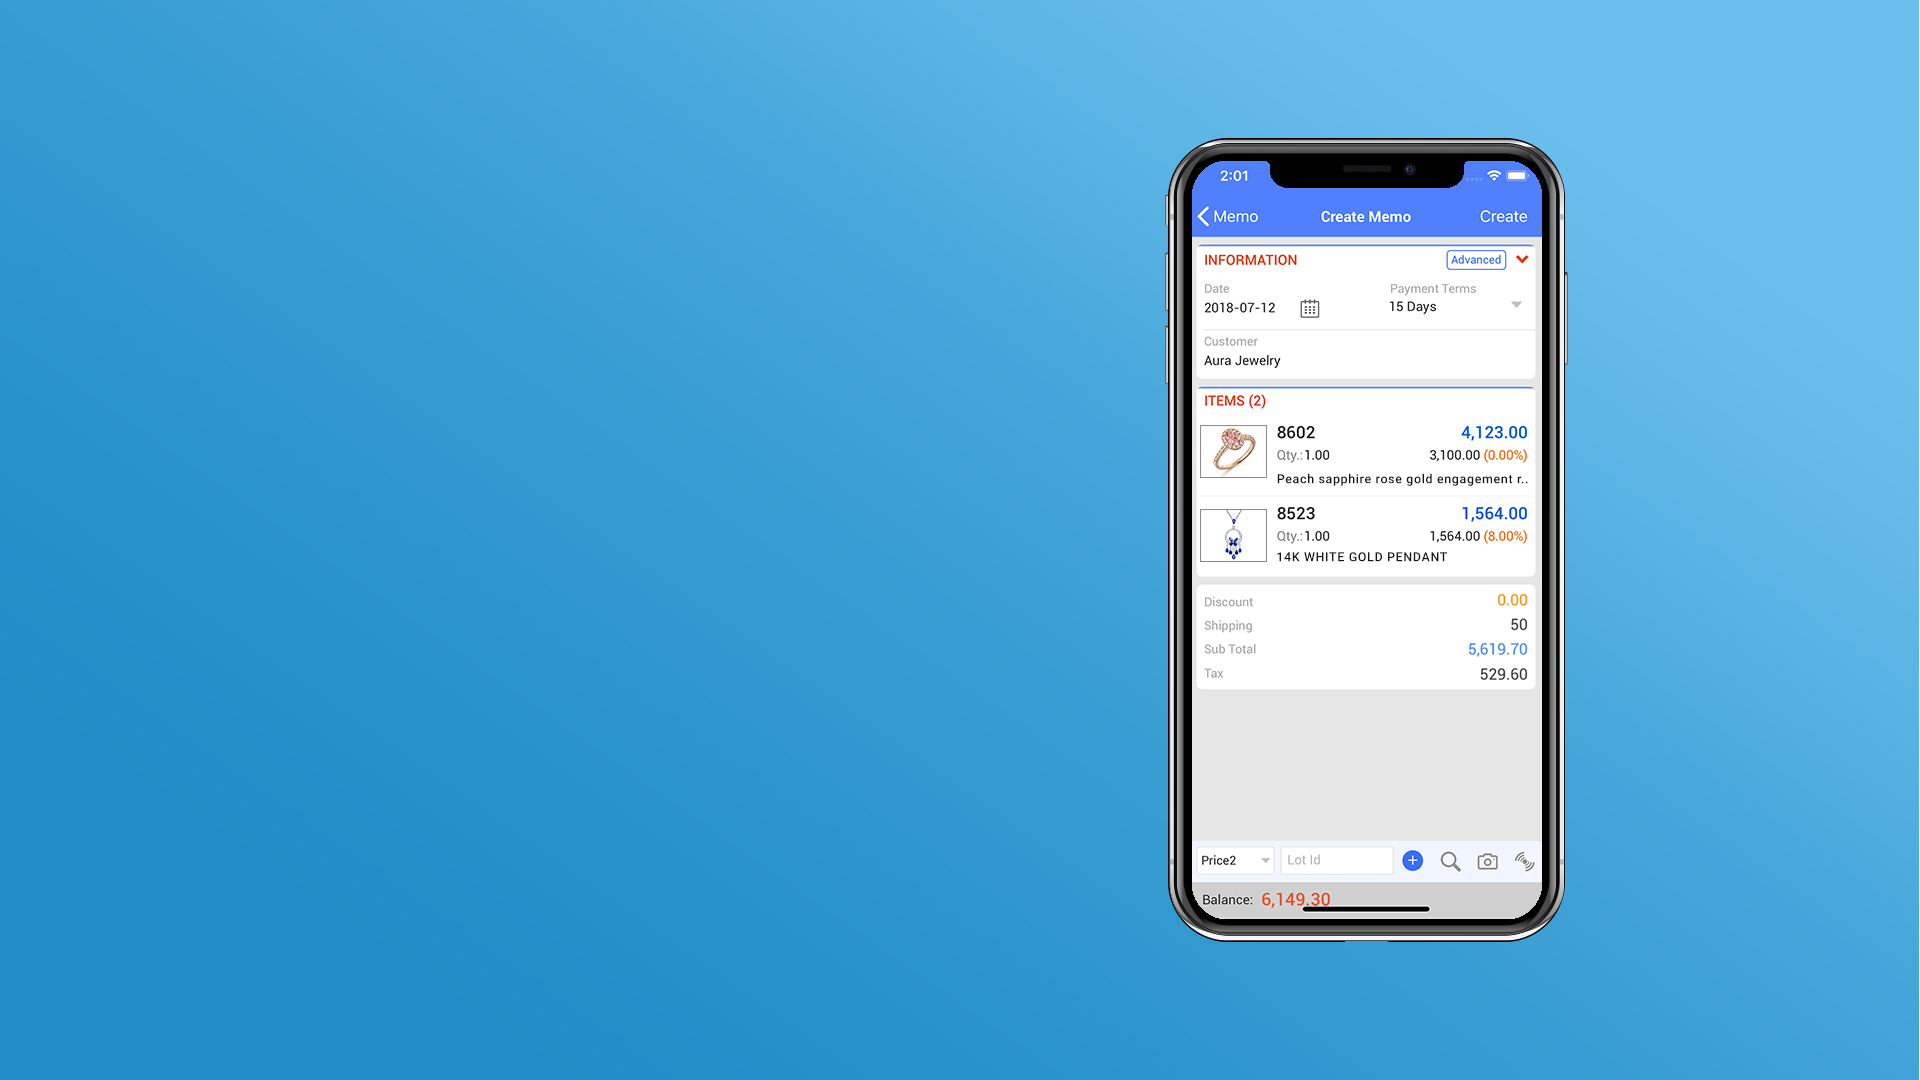 Create Memo right from the app